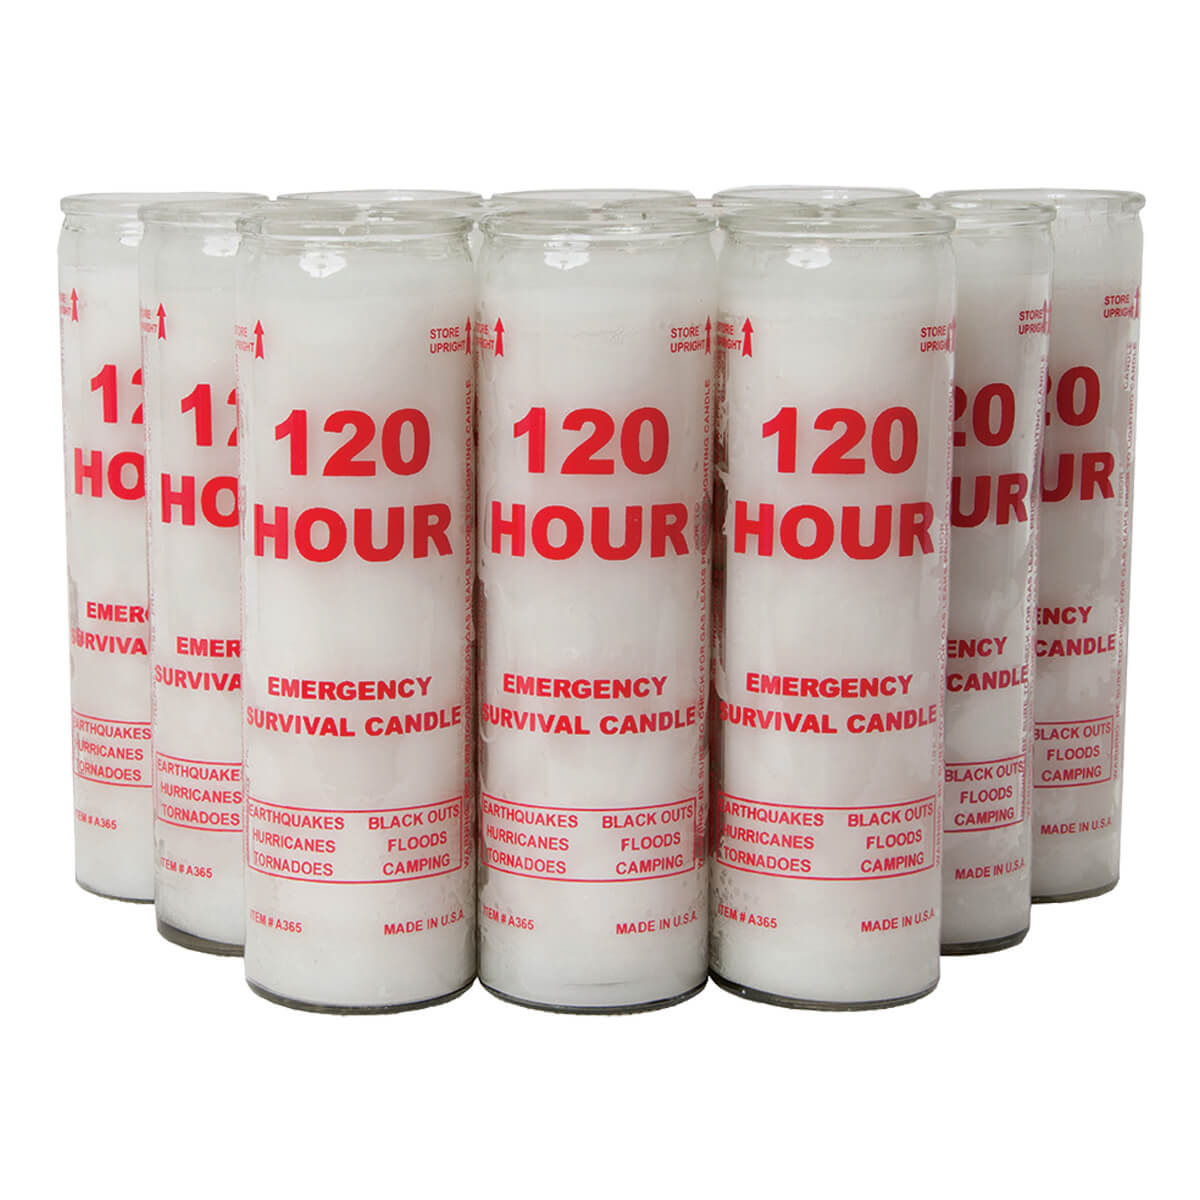 Emergency Candle, 120 hr, 2 pack